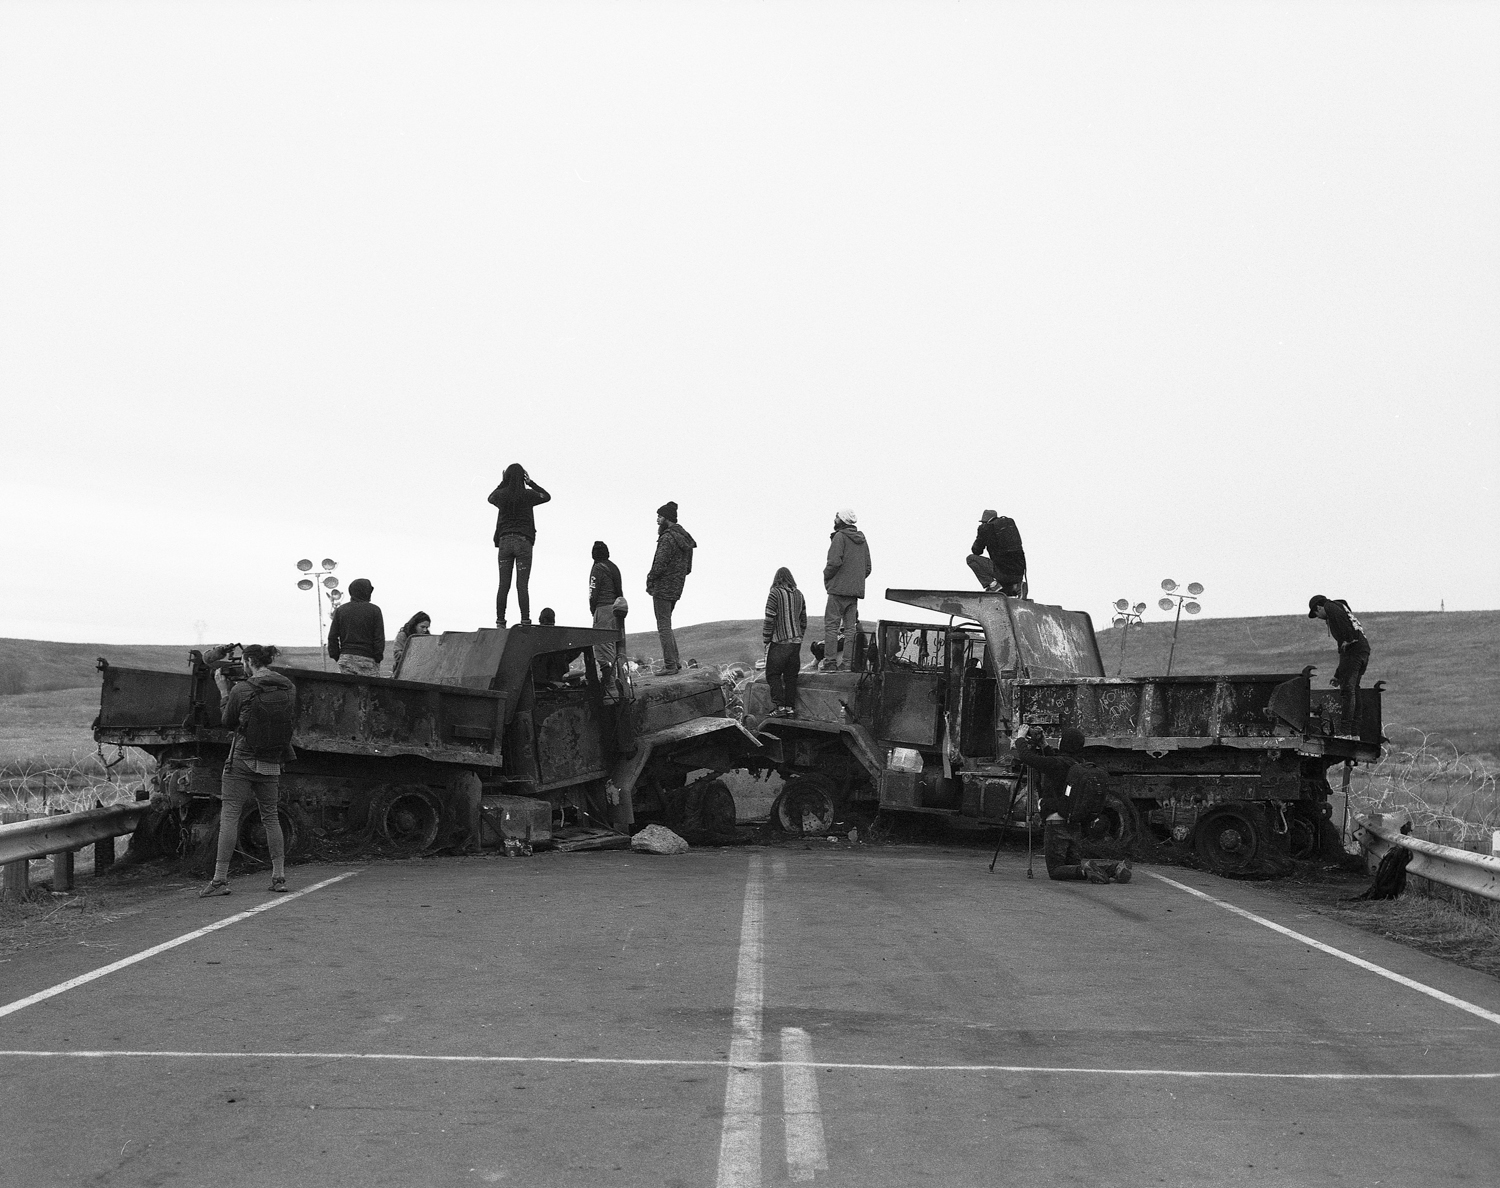 Police Barricade, Cannonball, ND, November 2016 ,  Andrew Williams